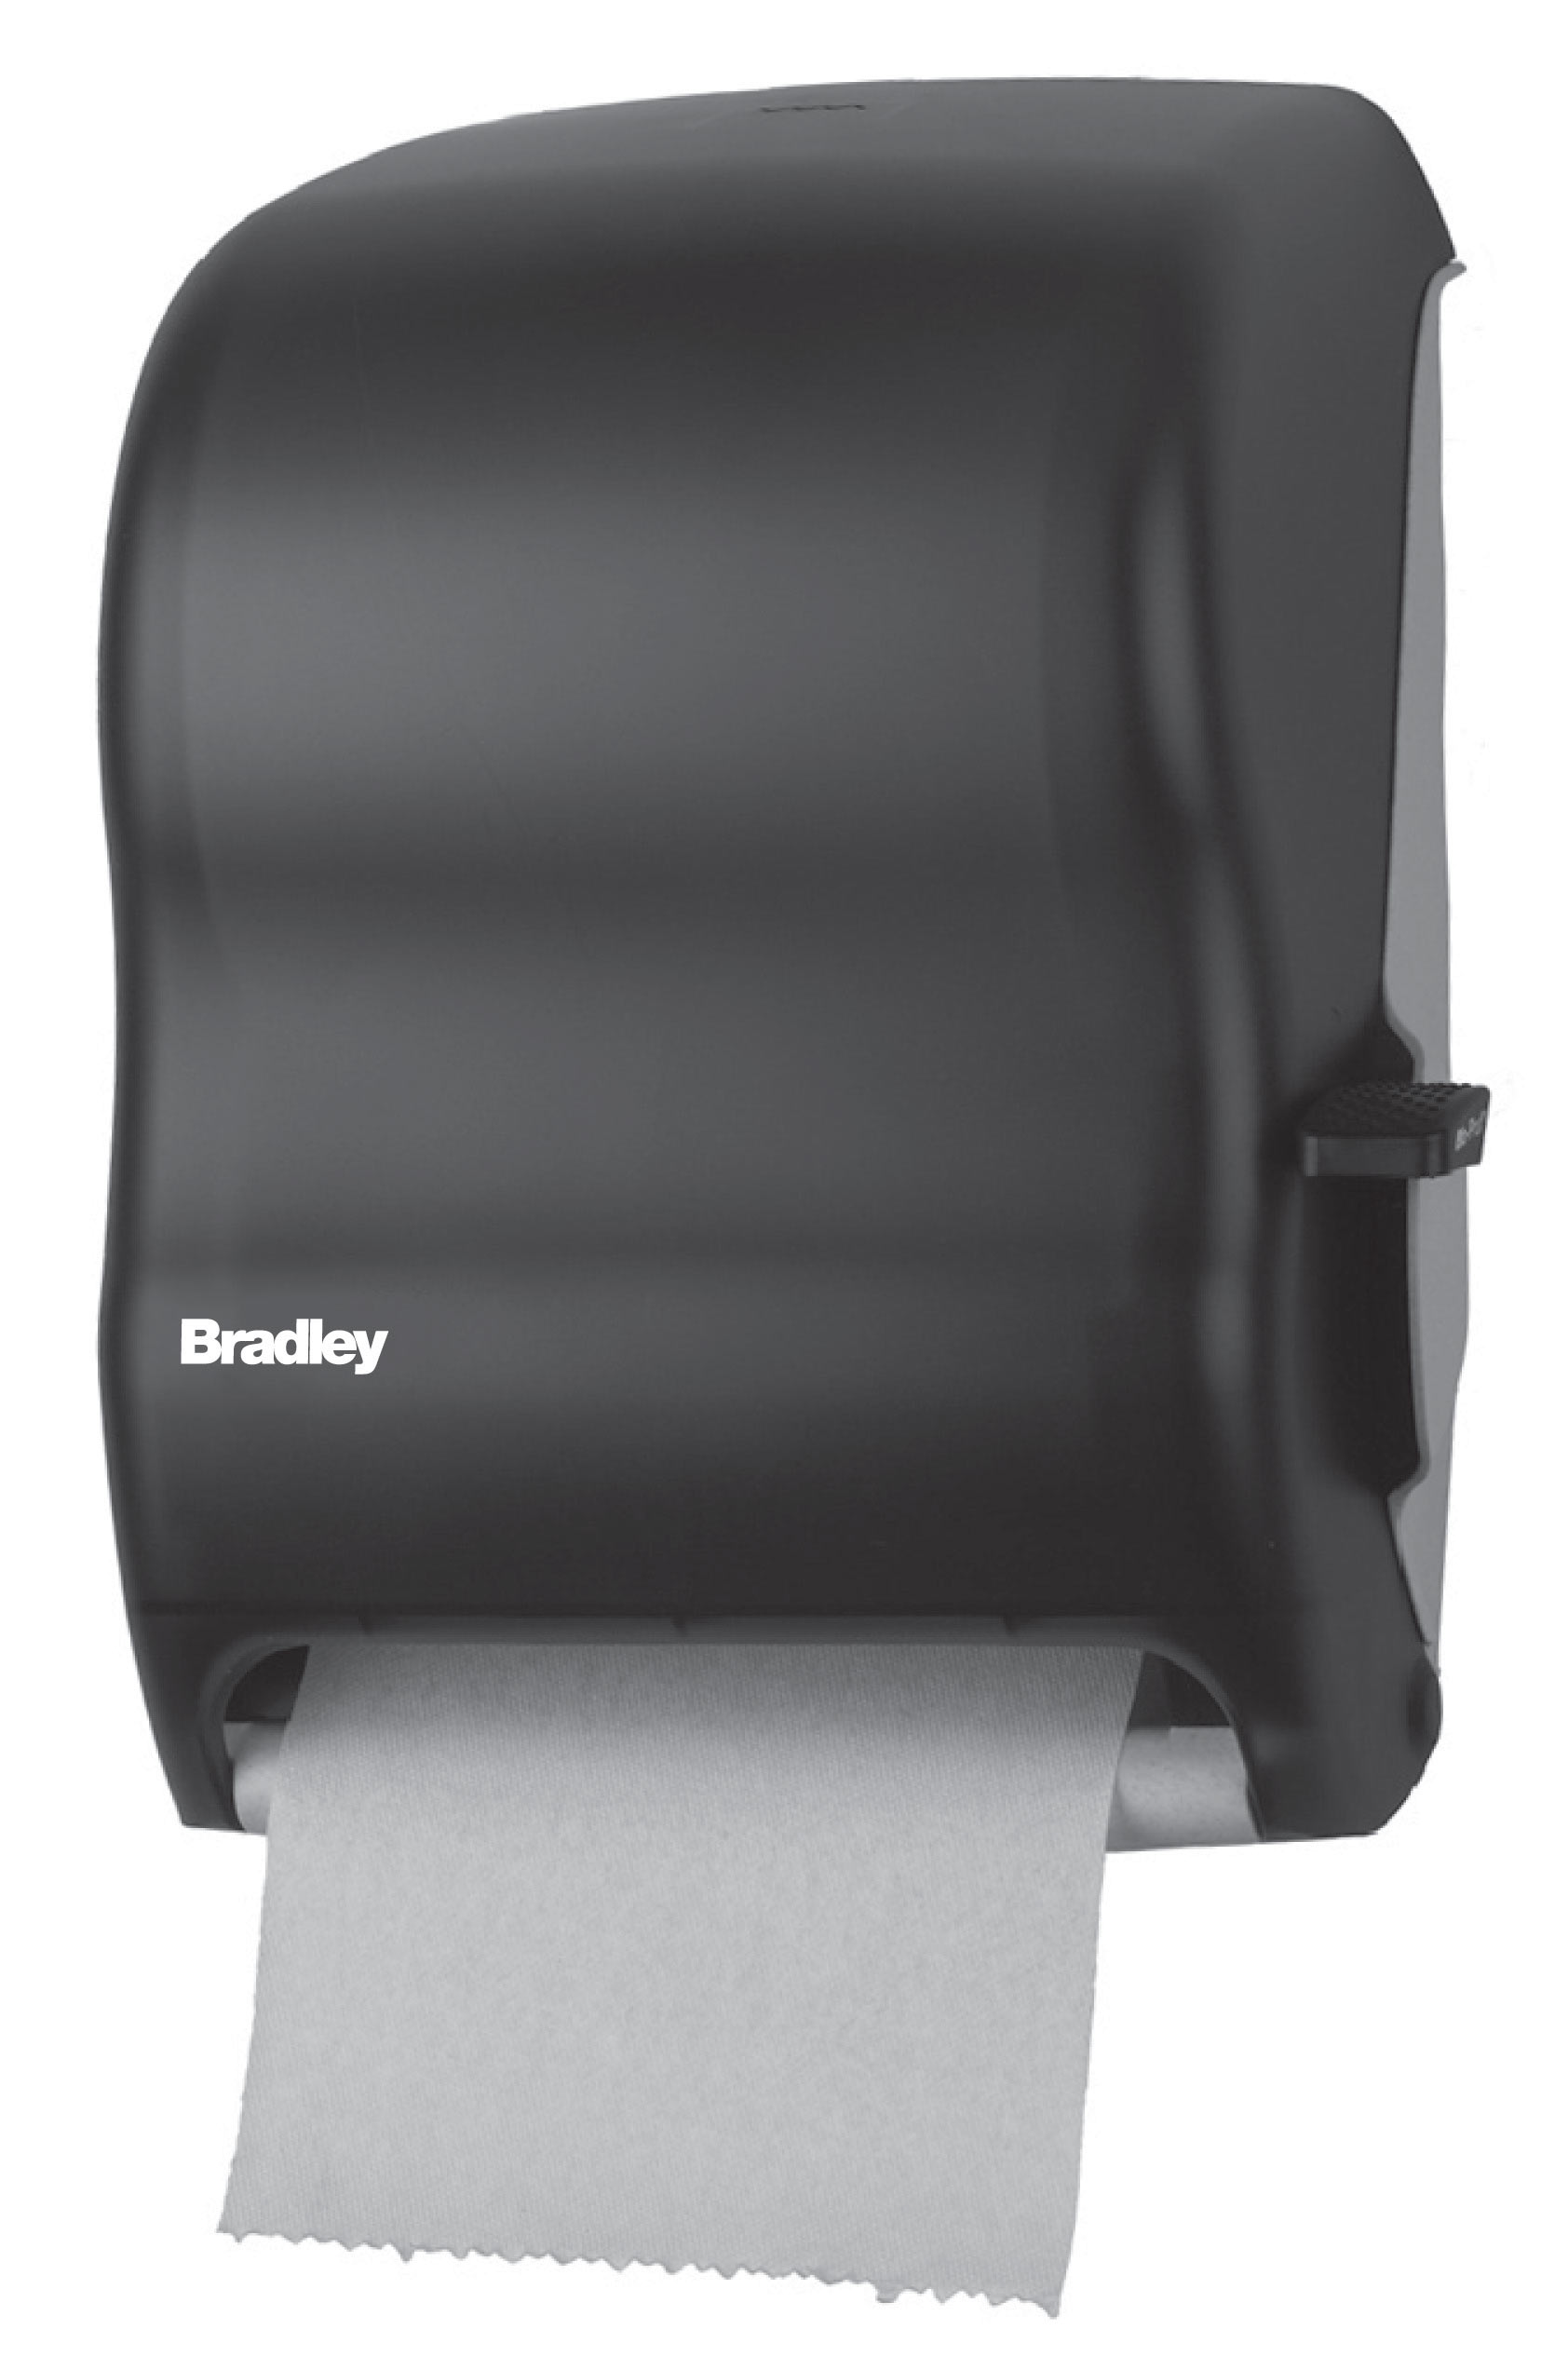 Lever Operated Roll Towel Dispenser